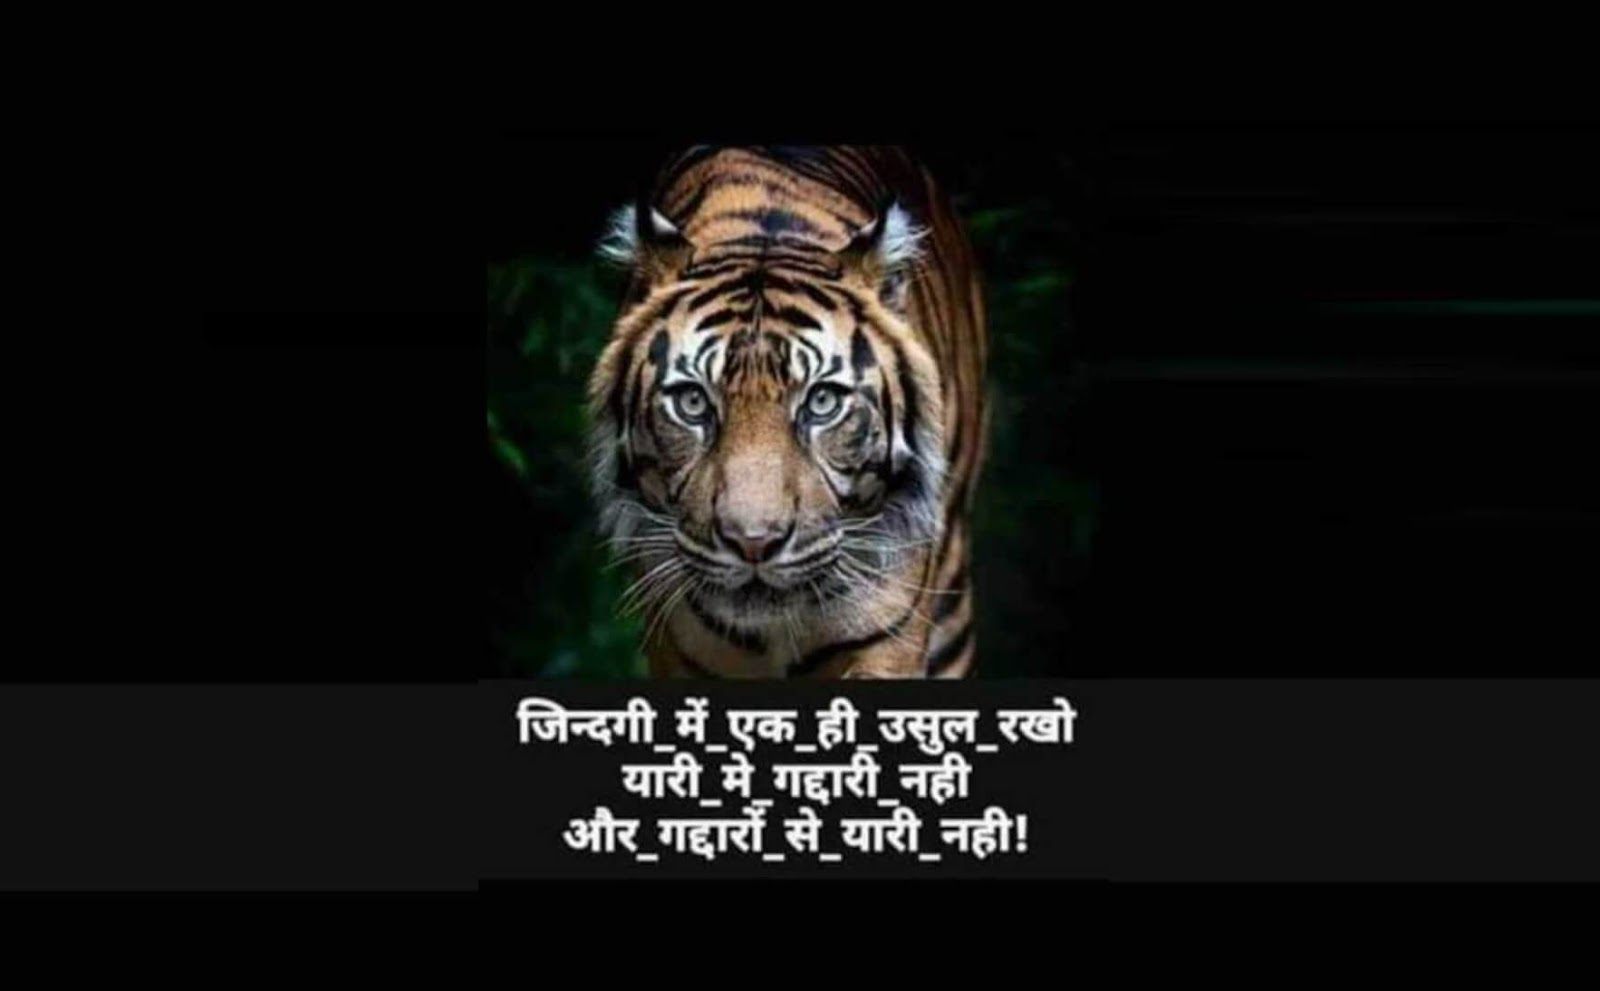 Tiger Like Attitude Shayari for Boys in Hindi